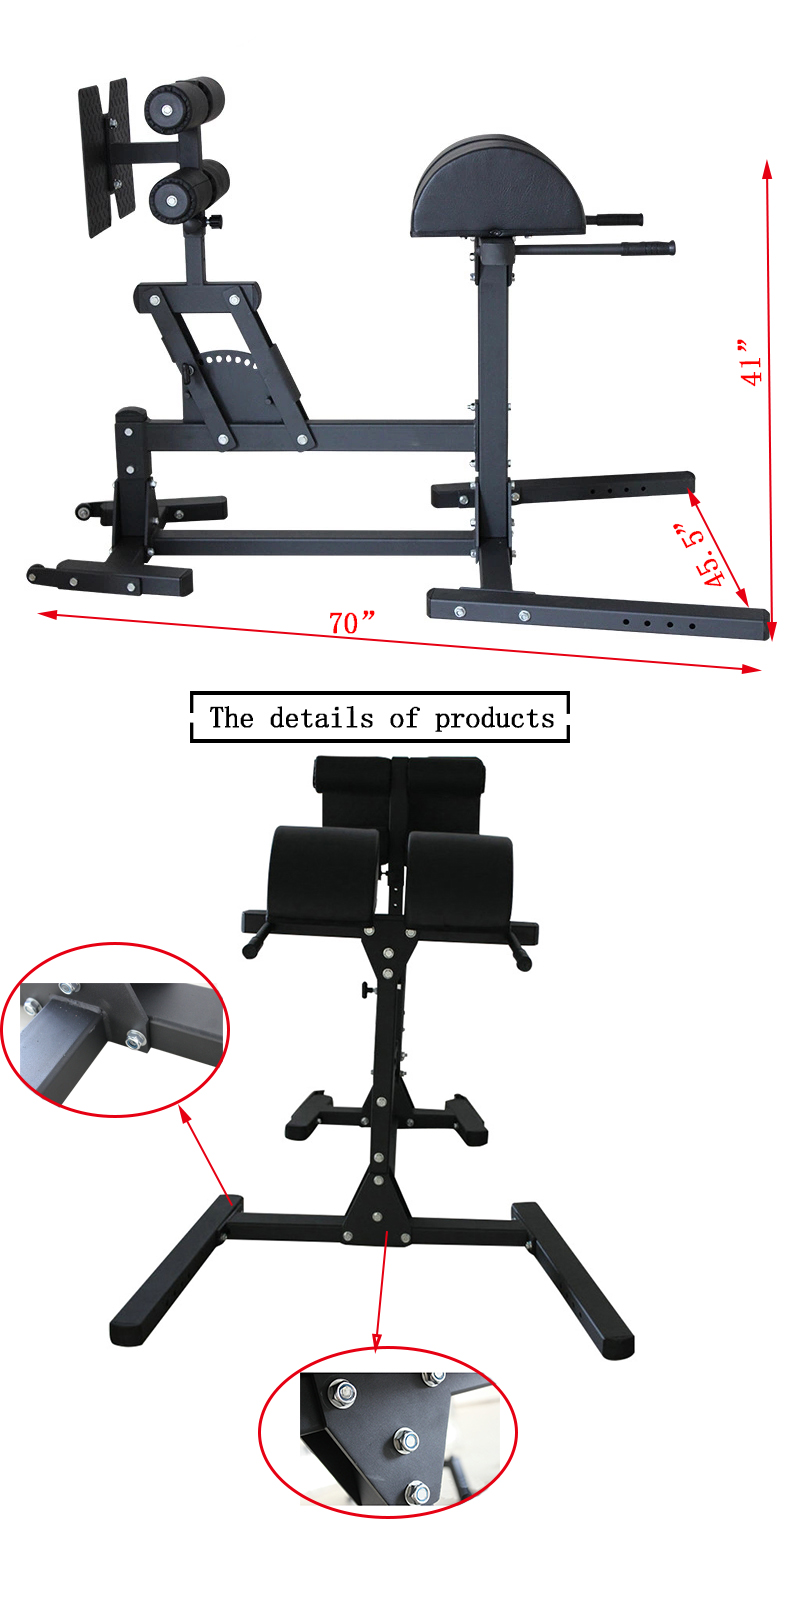 Roman Chair Commercial Gym Fitness Adjustable Roman Chair Buy Gym Roman Chair Adjustable Roman Chair Commercial Roman Chair Product On Alibaba